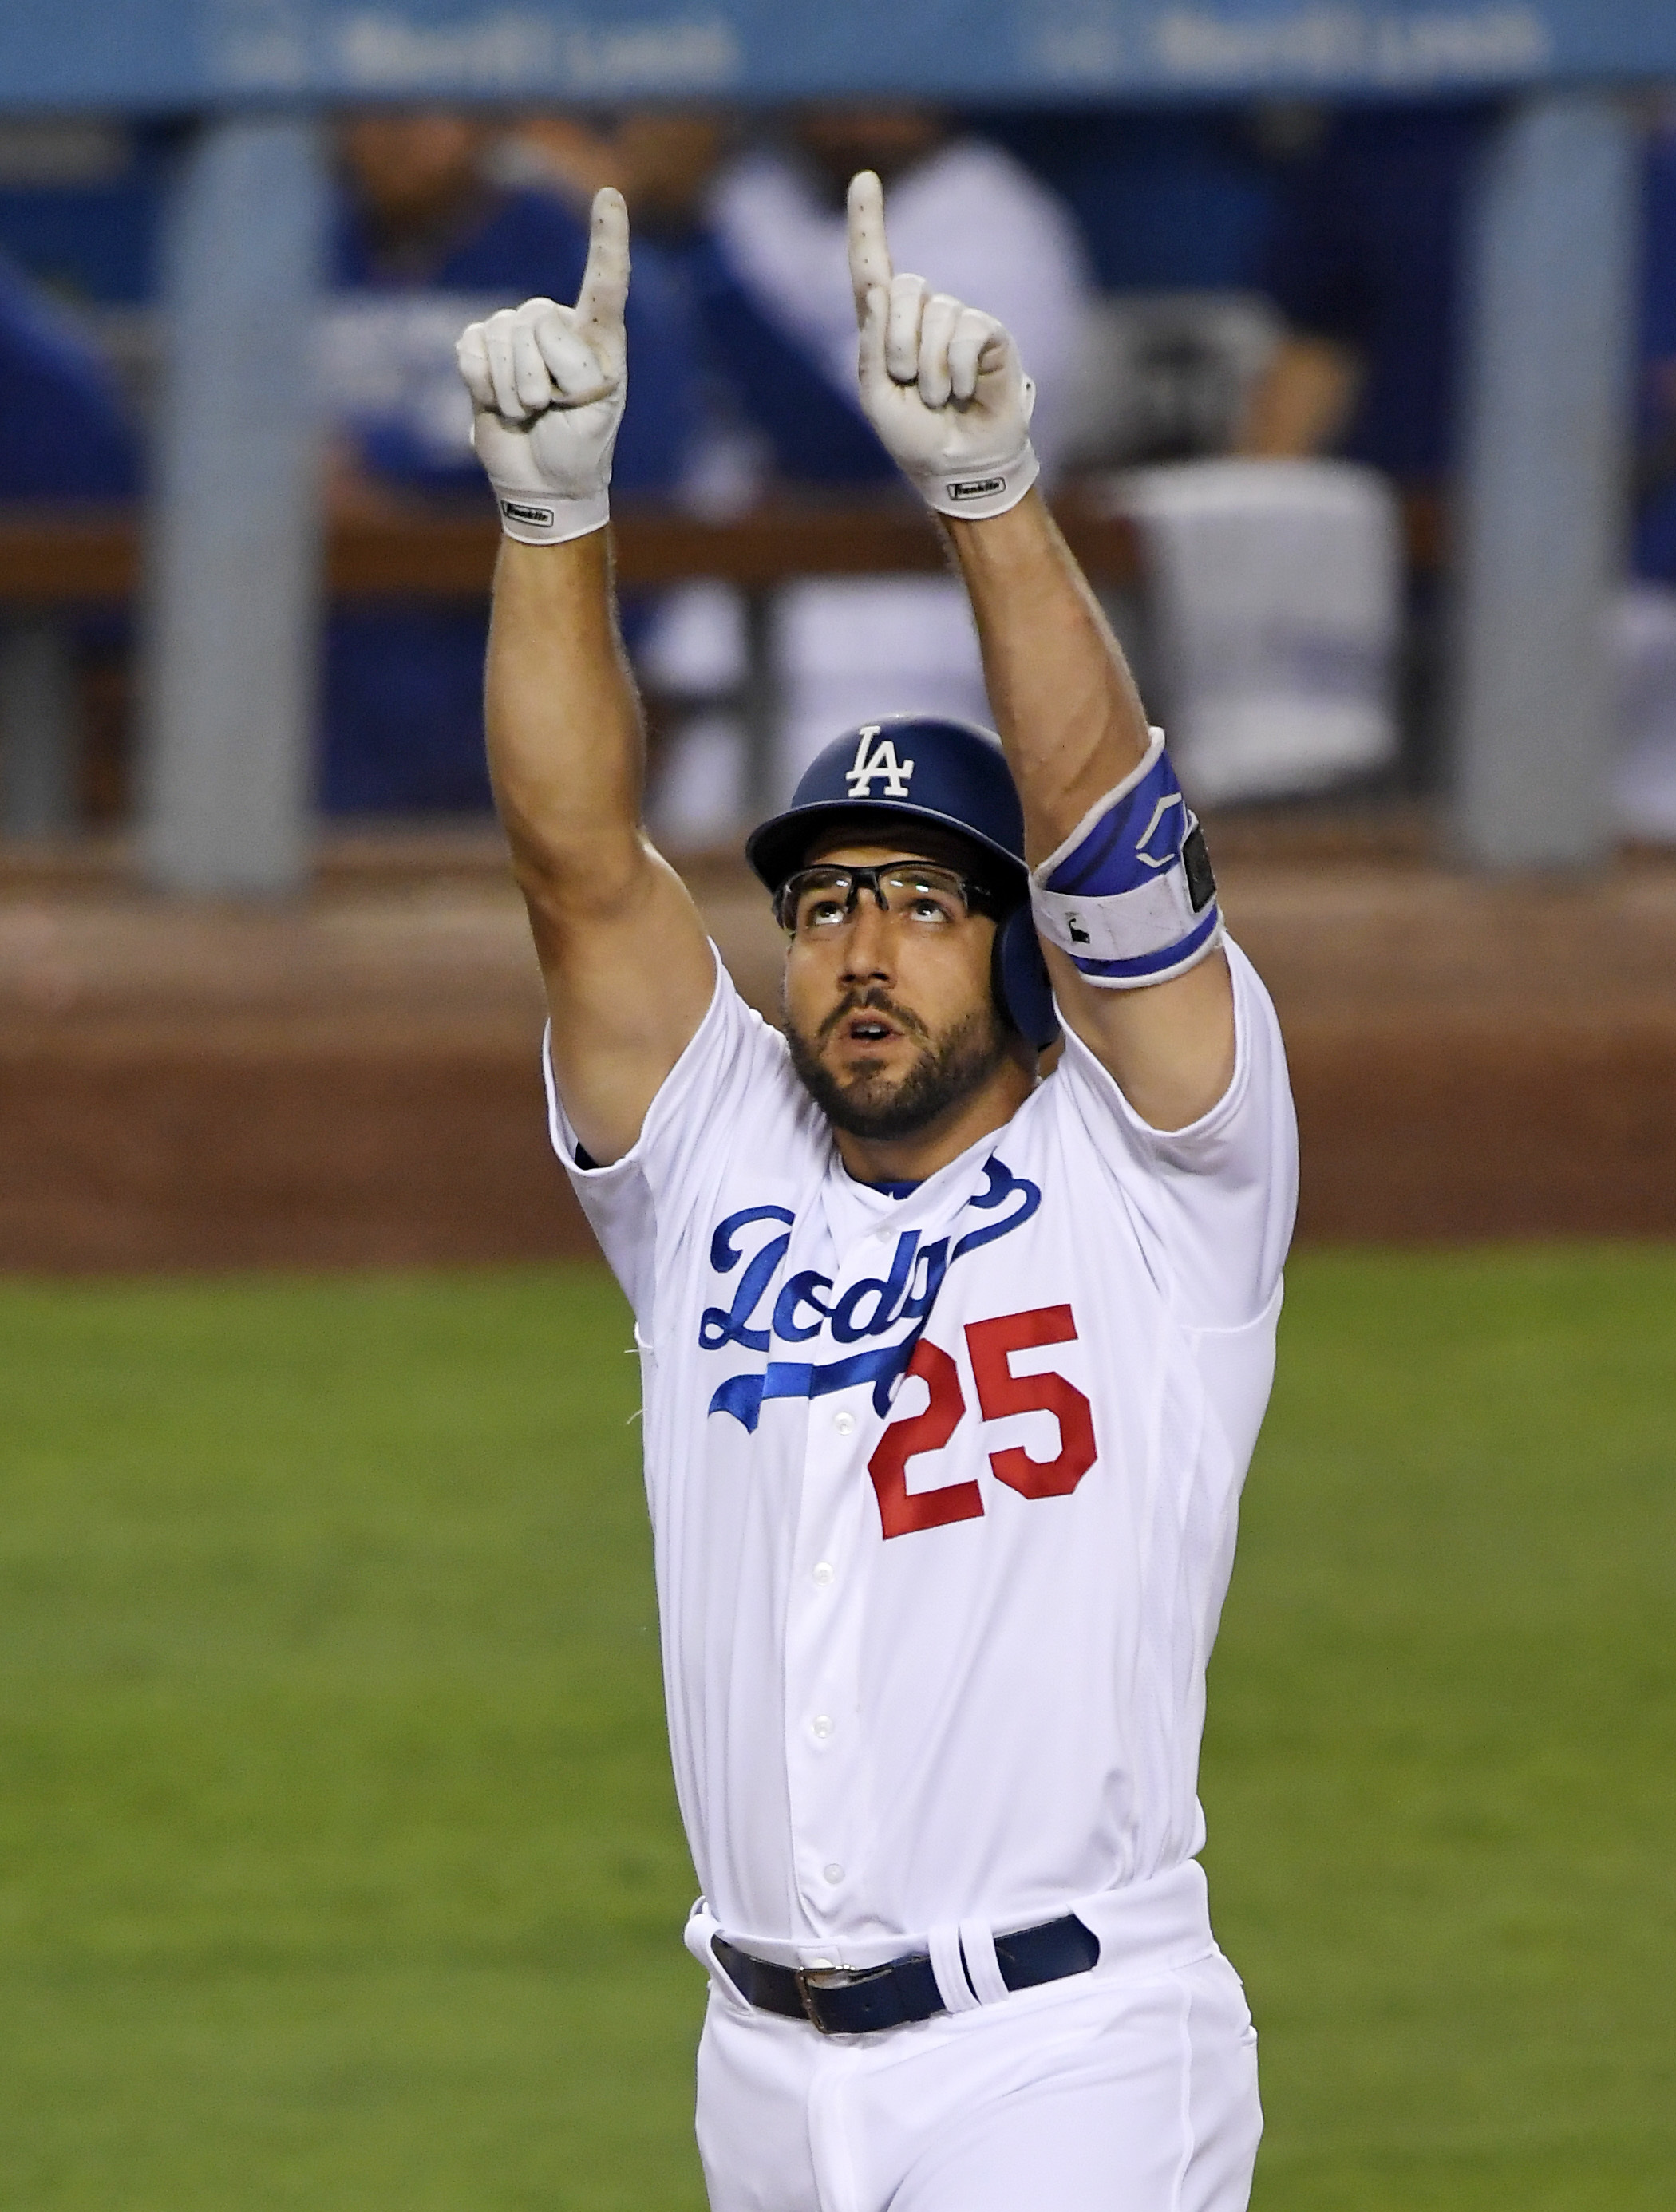 Los Angeles Dodgers' Rob Segedin celebrates after hitting a solo home run during the second inning of a baseball game against the San Francisco Giants, Tuesday, Aug. 23, 2016, in Los Angeles. (AP Photo/Mark J. Terrill)